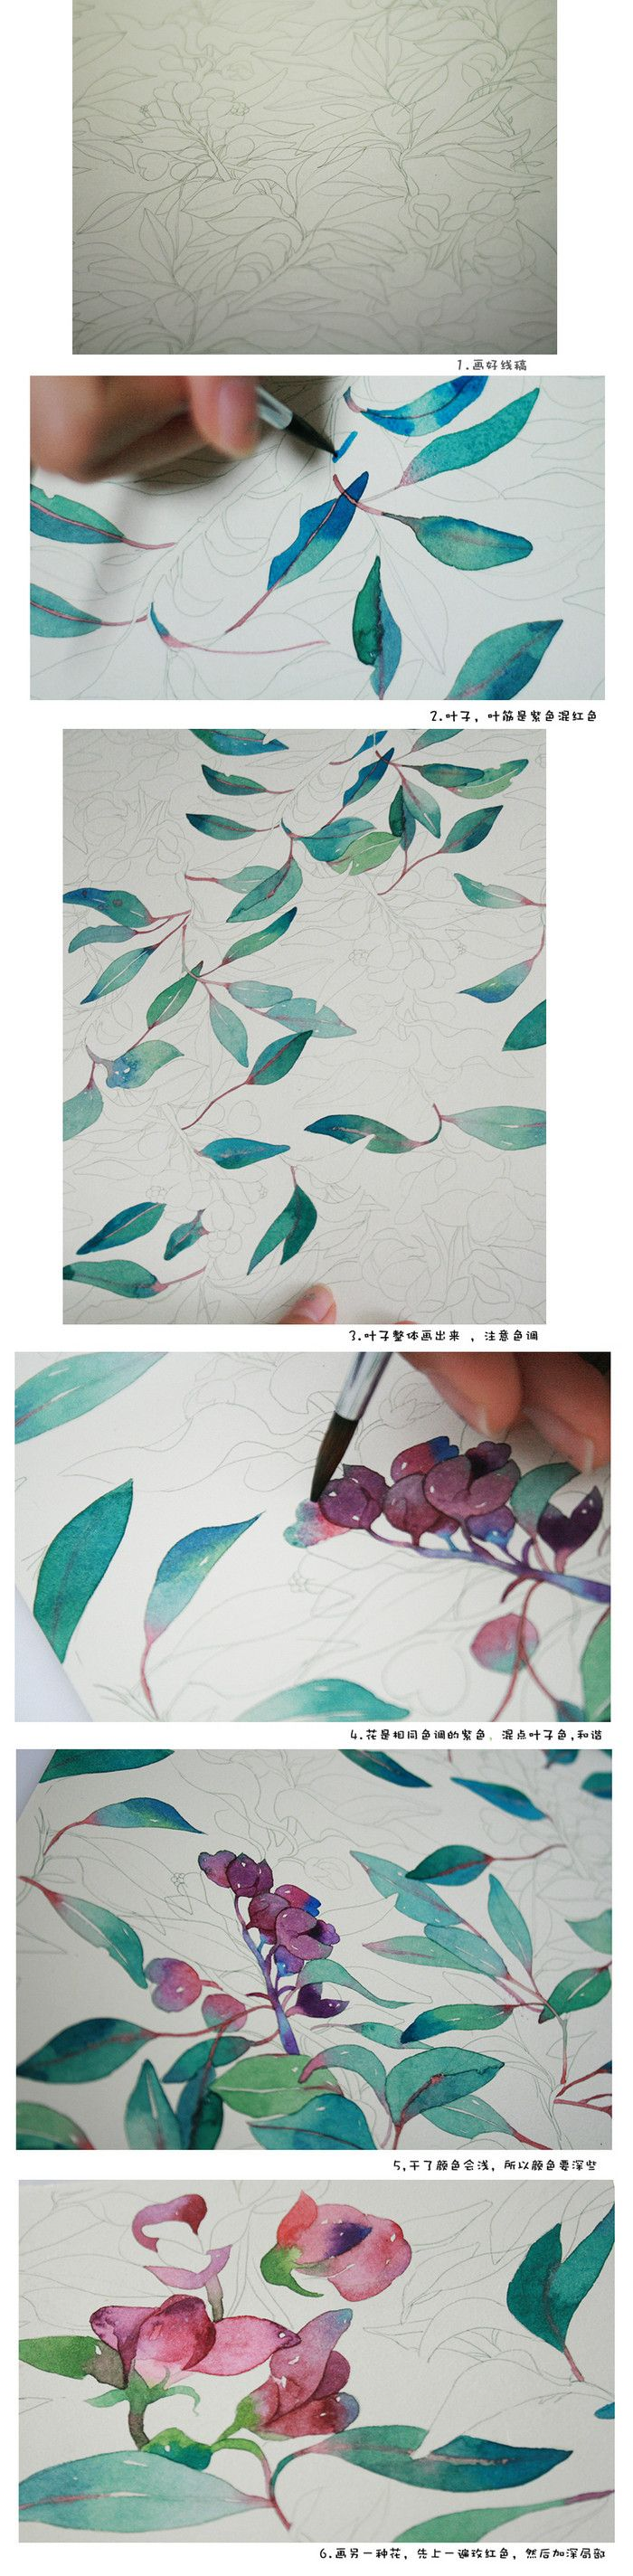 Watercolor flowers step FIG -candy Tian _ watercolor illustration step tutorial…